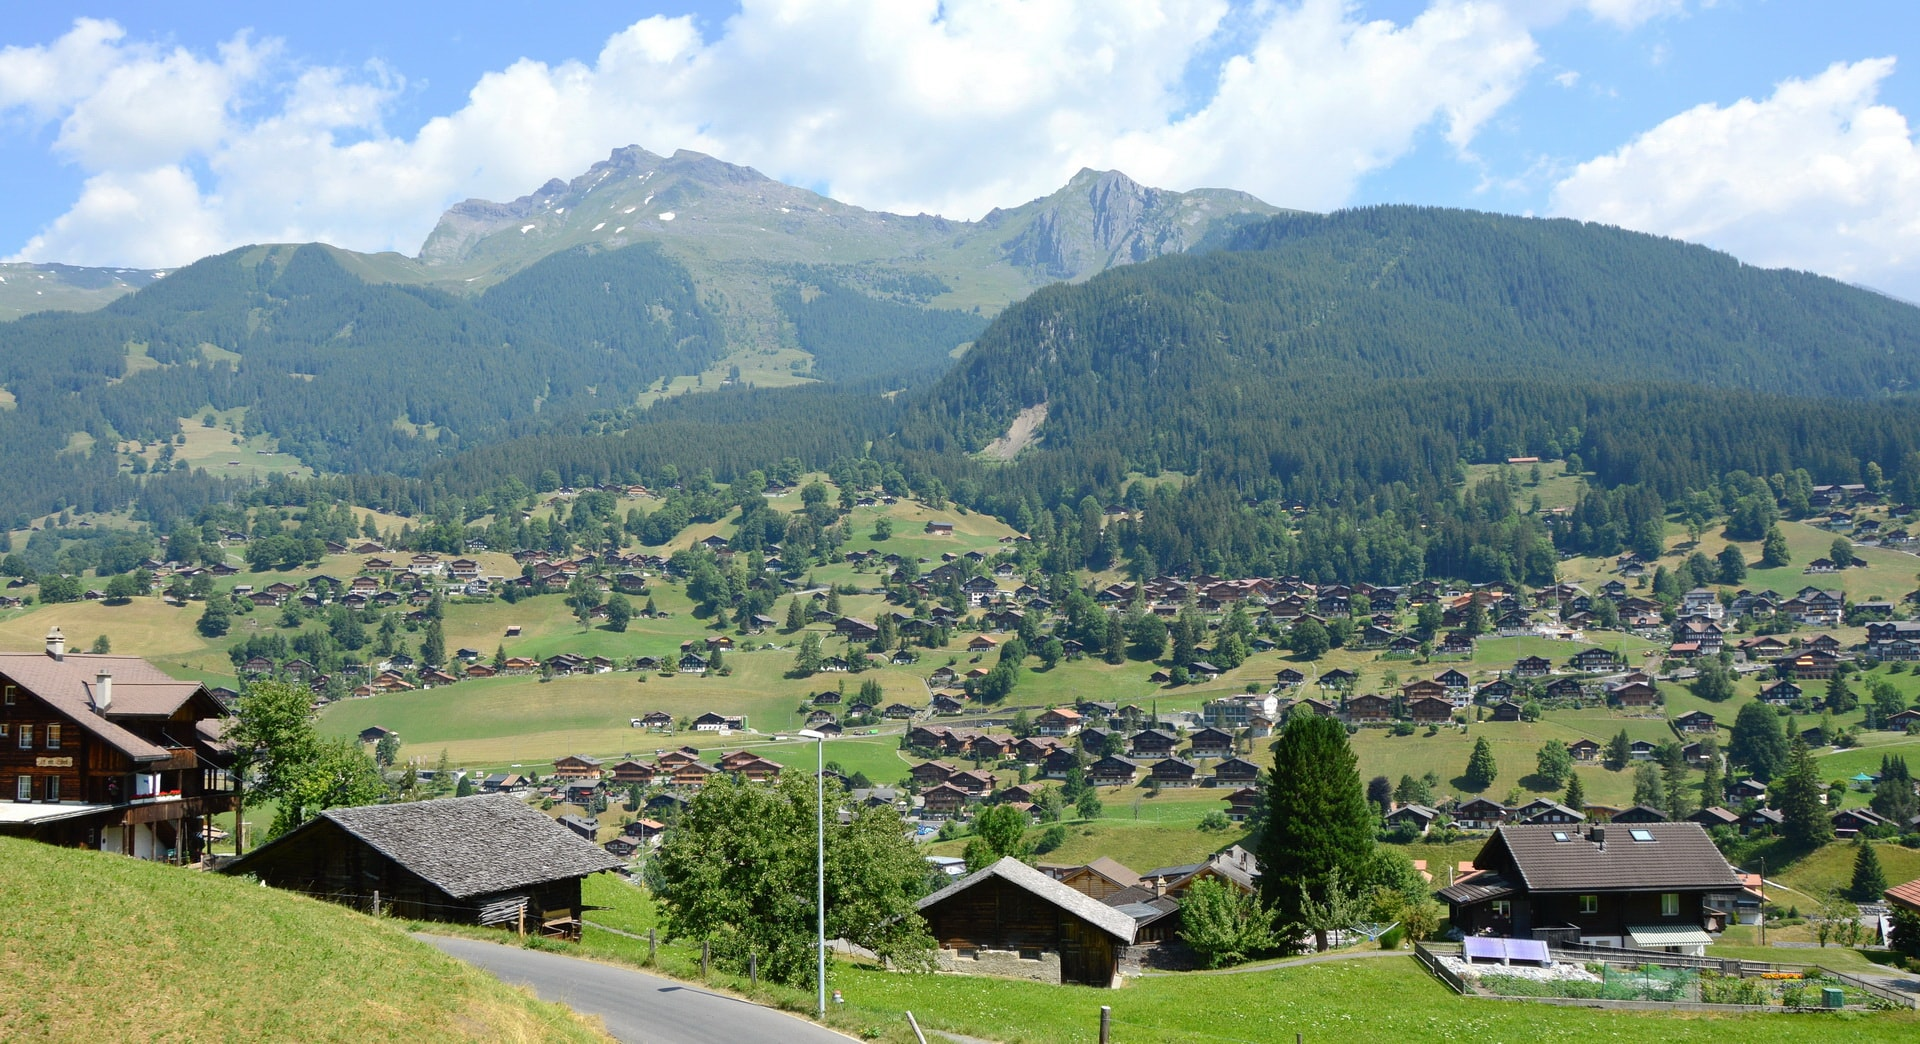 Grindelwald valley full of traditional wooden houses